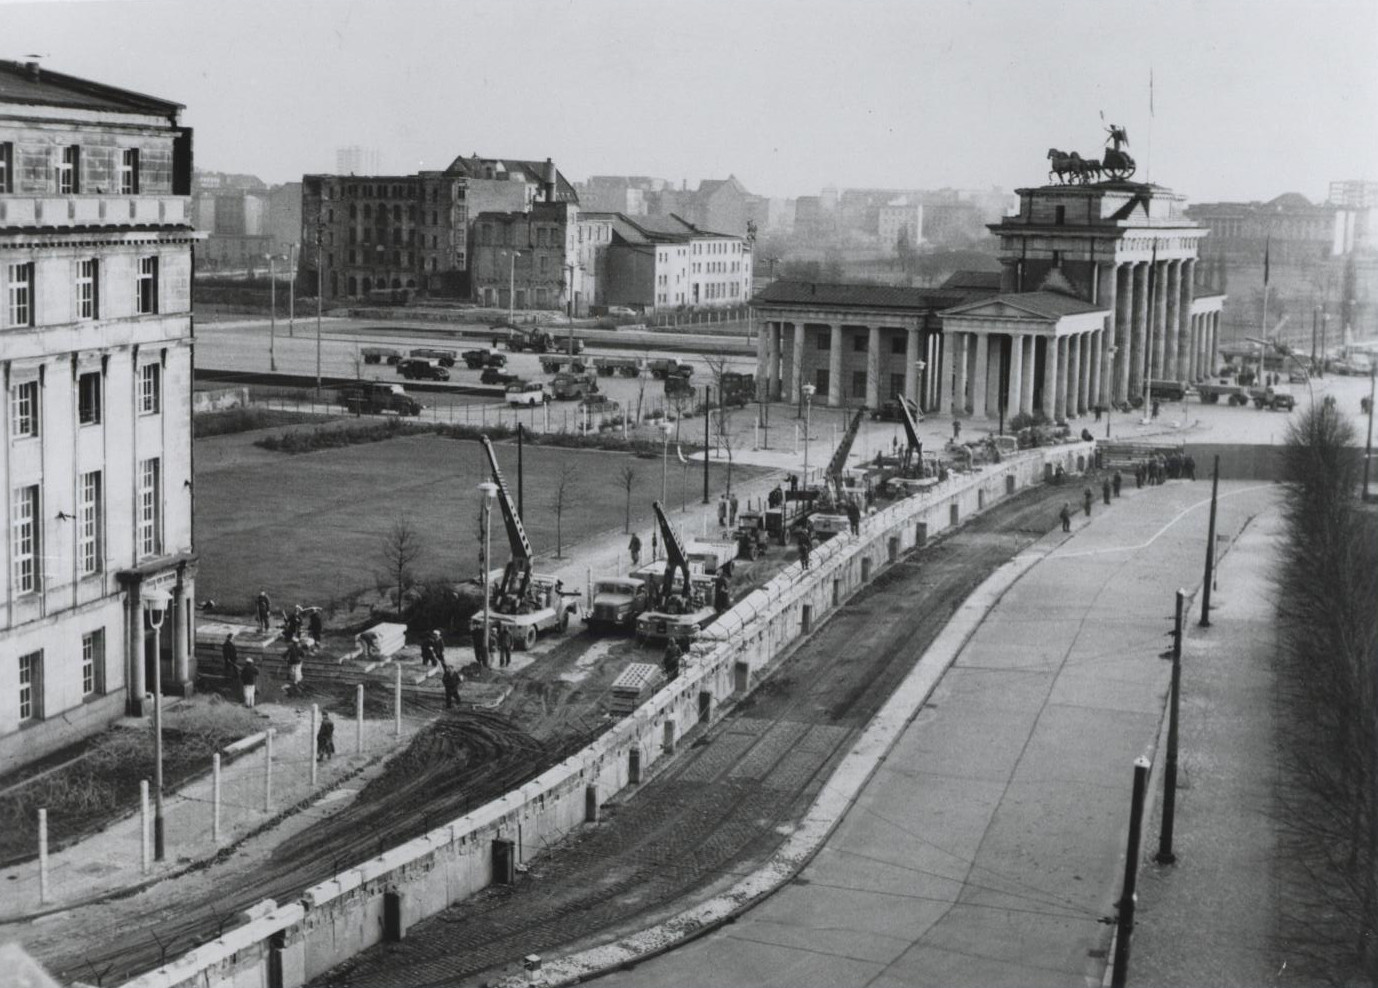 East German Workers reinforce the Berlin Wall near the Brandenburg Gate, 1961 (Wikimedia Commons/U.S. Information Service)